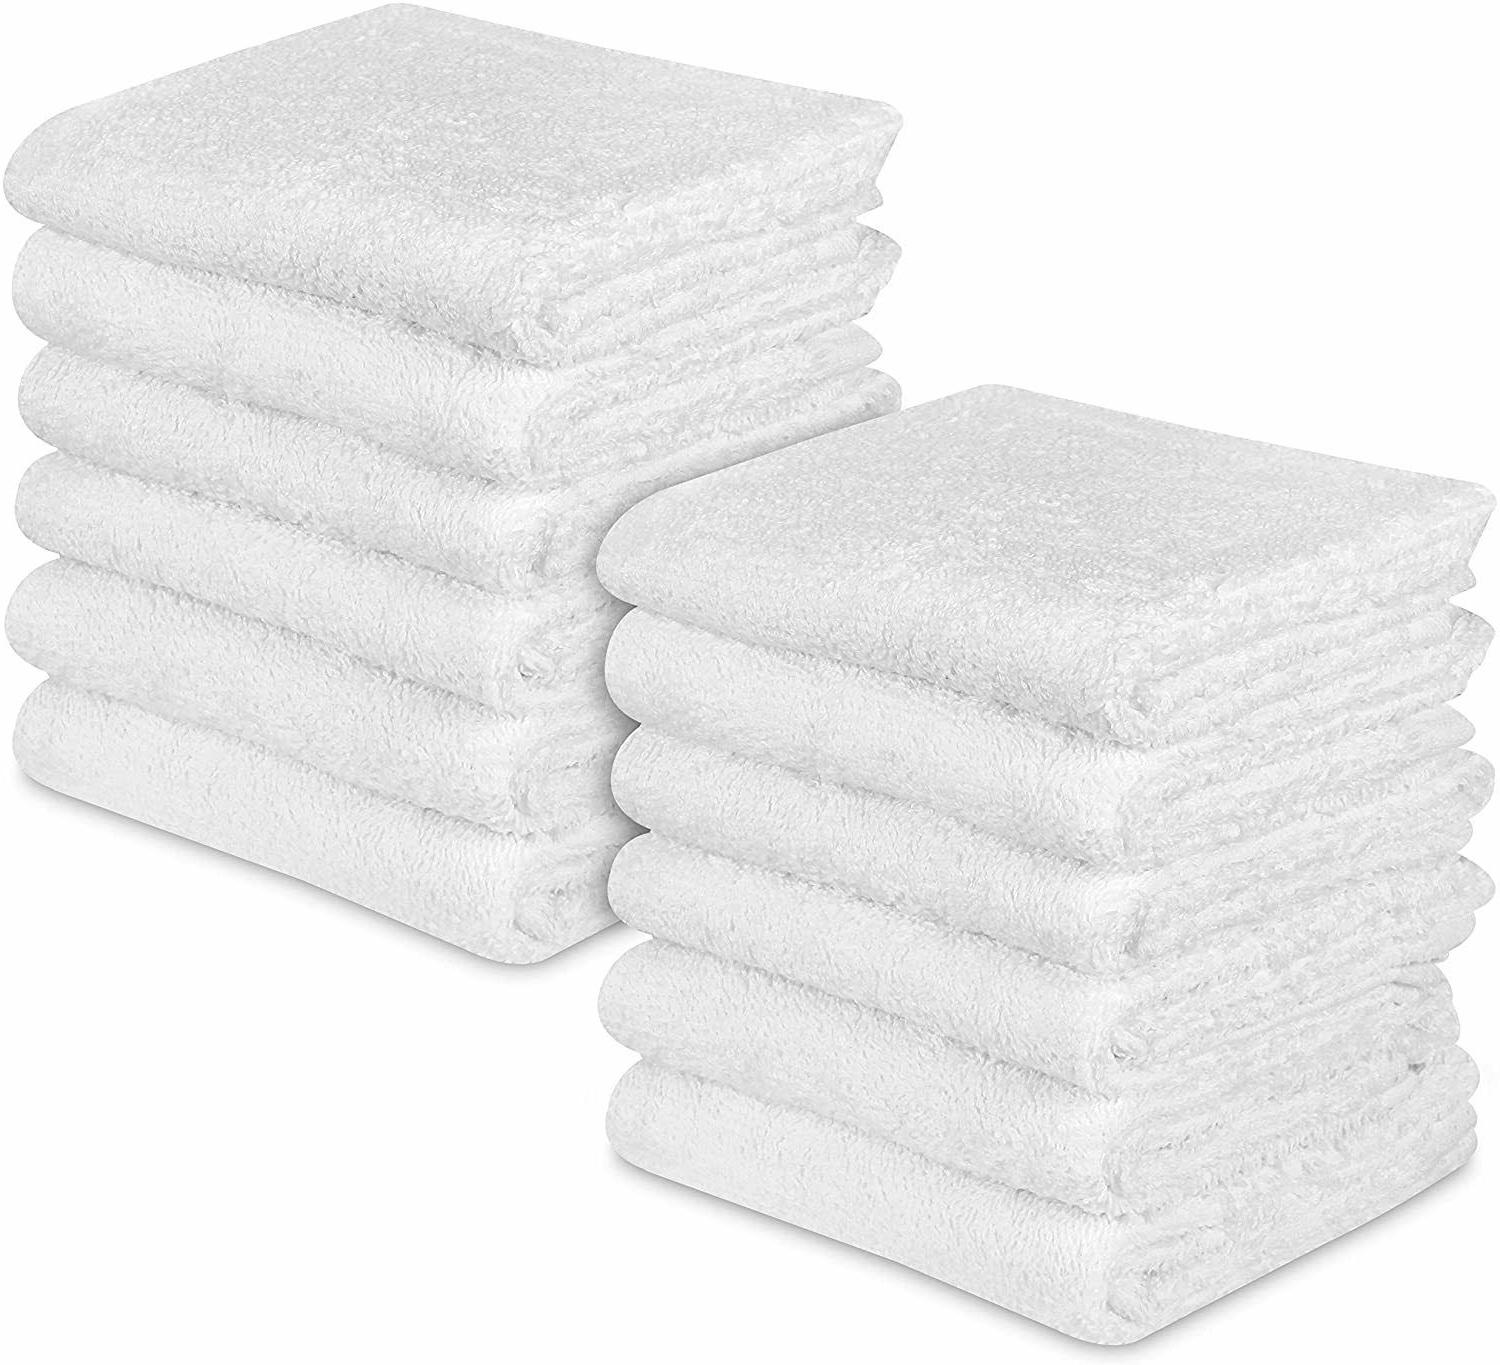 12 Towels Cleaning Car Cotton